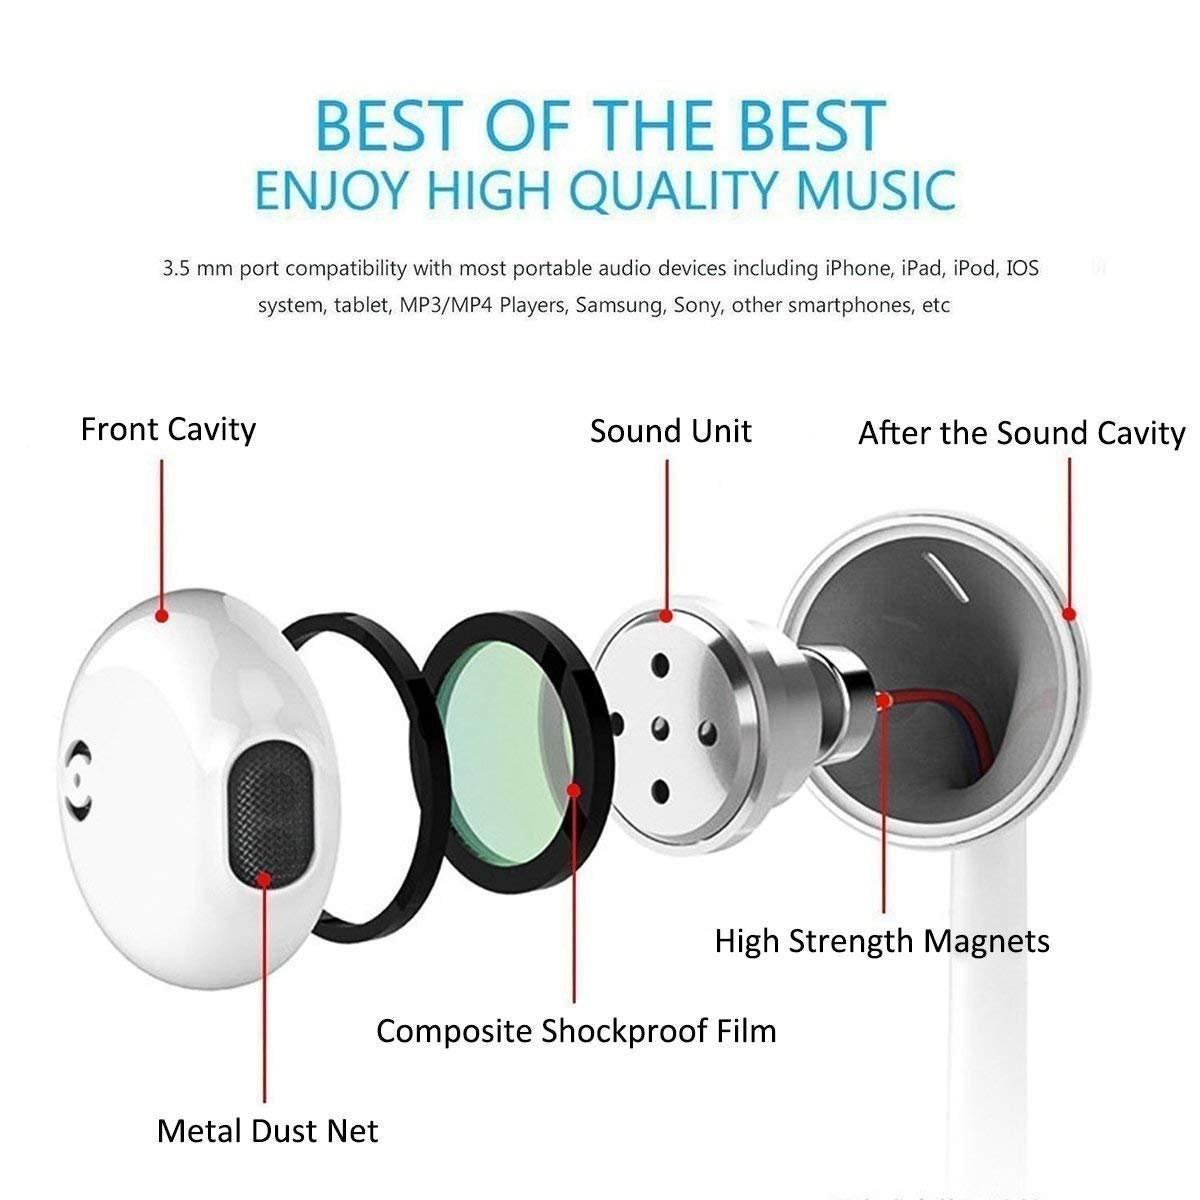 Lightning Earphones,With Microphone Earbuds Stereo Headphones and Noise Isolating headset Made for iPhone 7/7 Plus iPhone8/8Plus iPhone X Earphones,Support all iOS system by my-handy-design (Image #4)